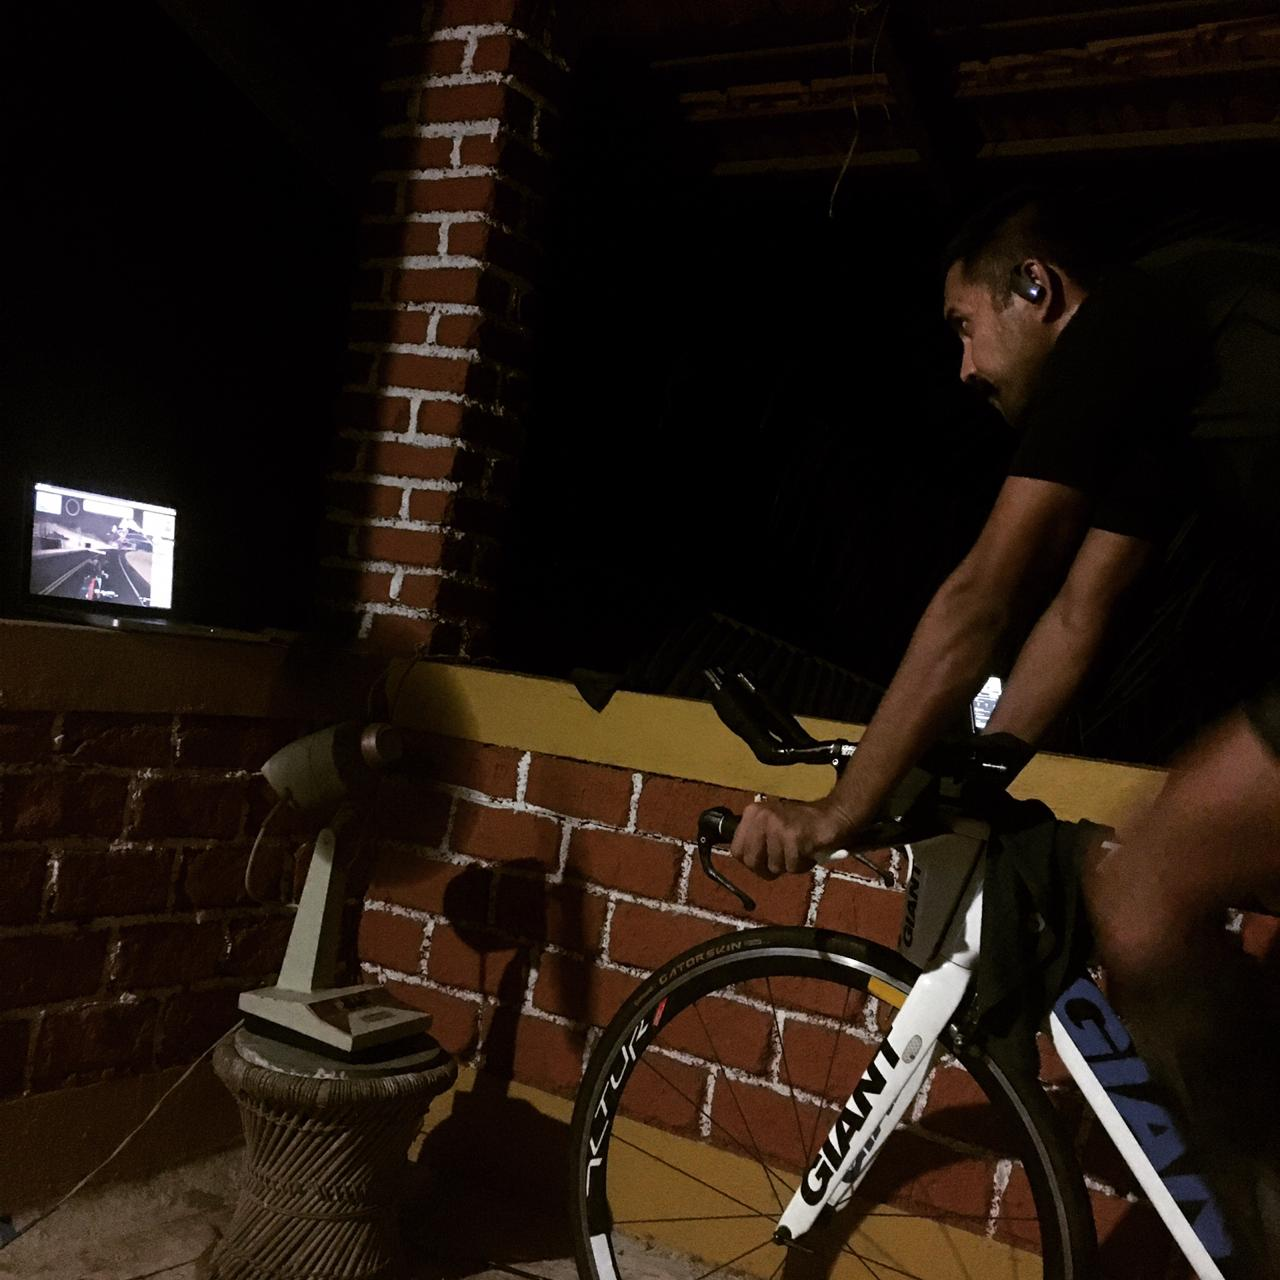 Sumit Patil cycles 24hours at night